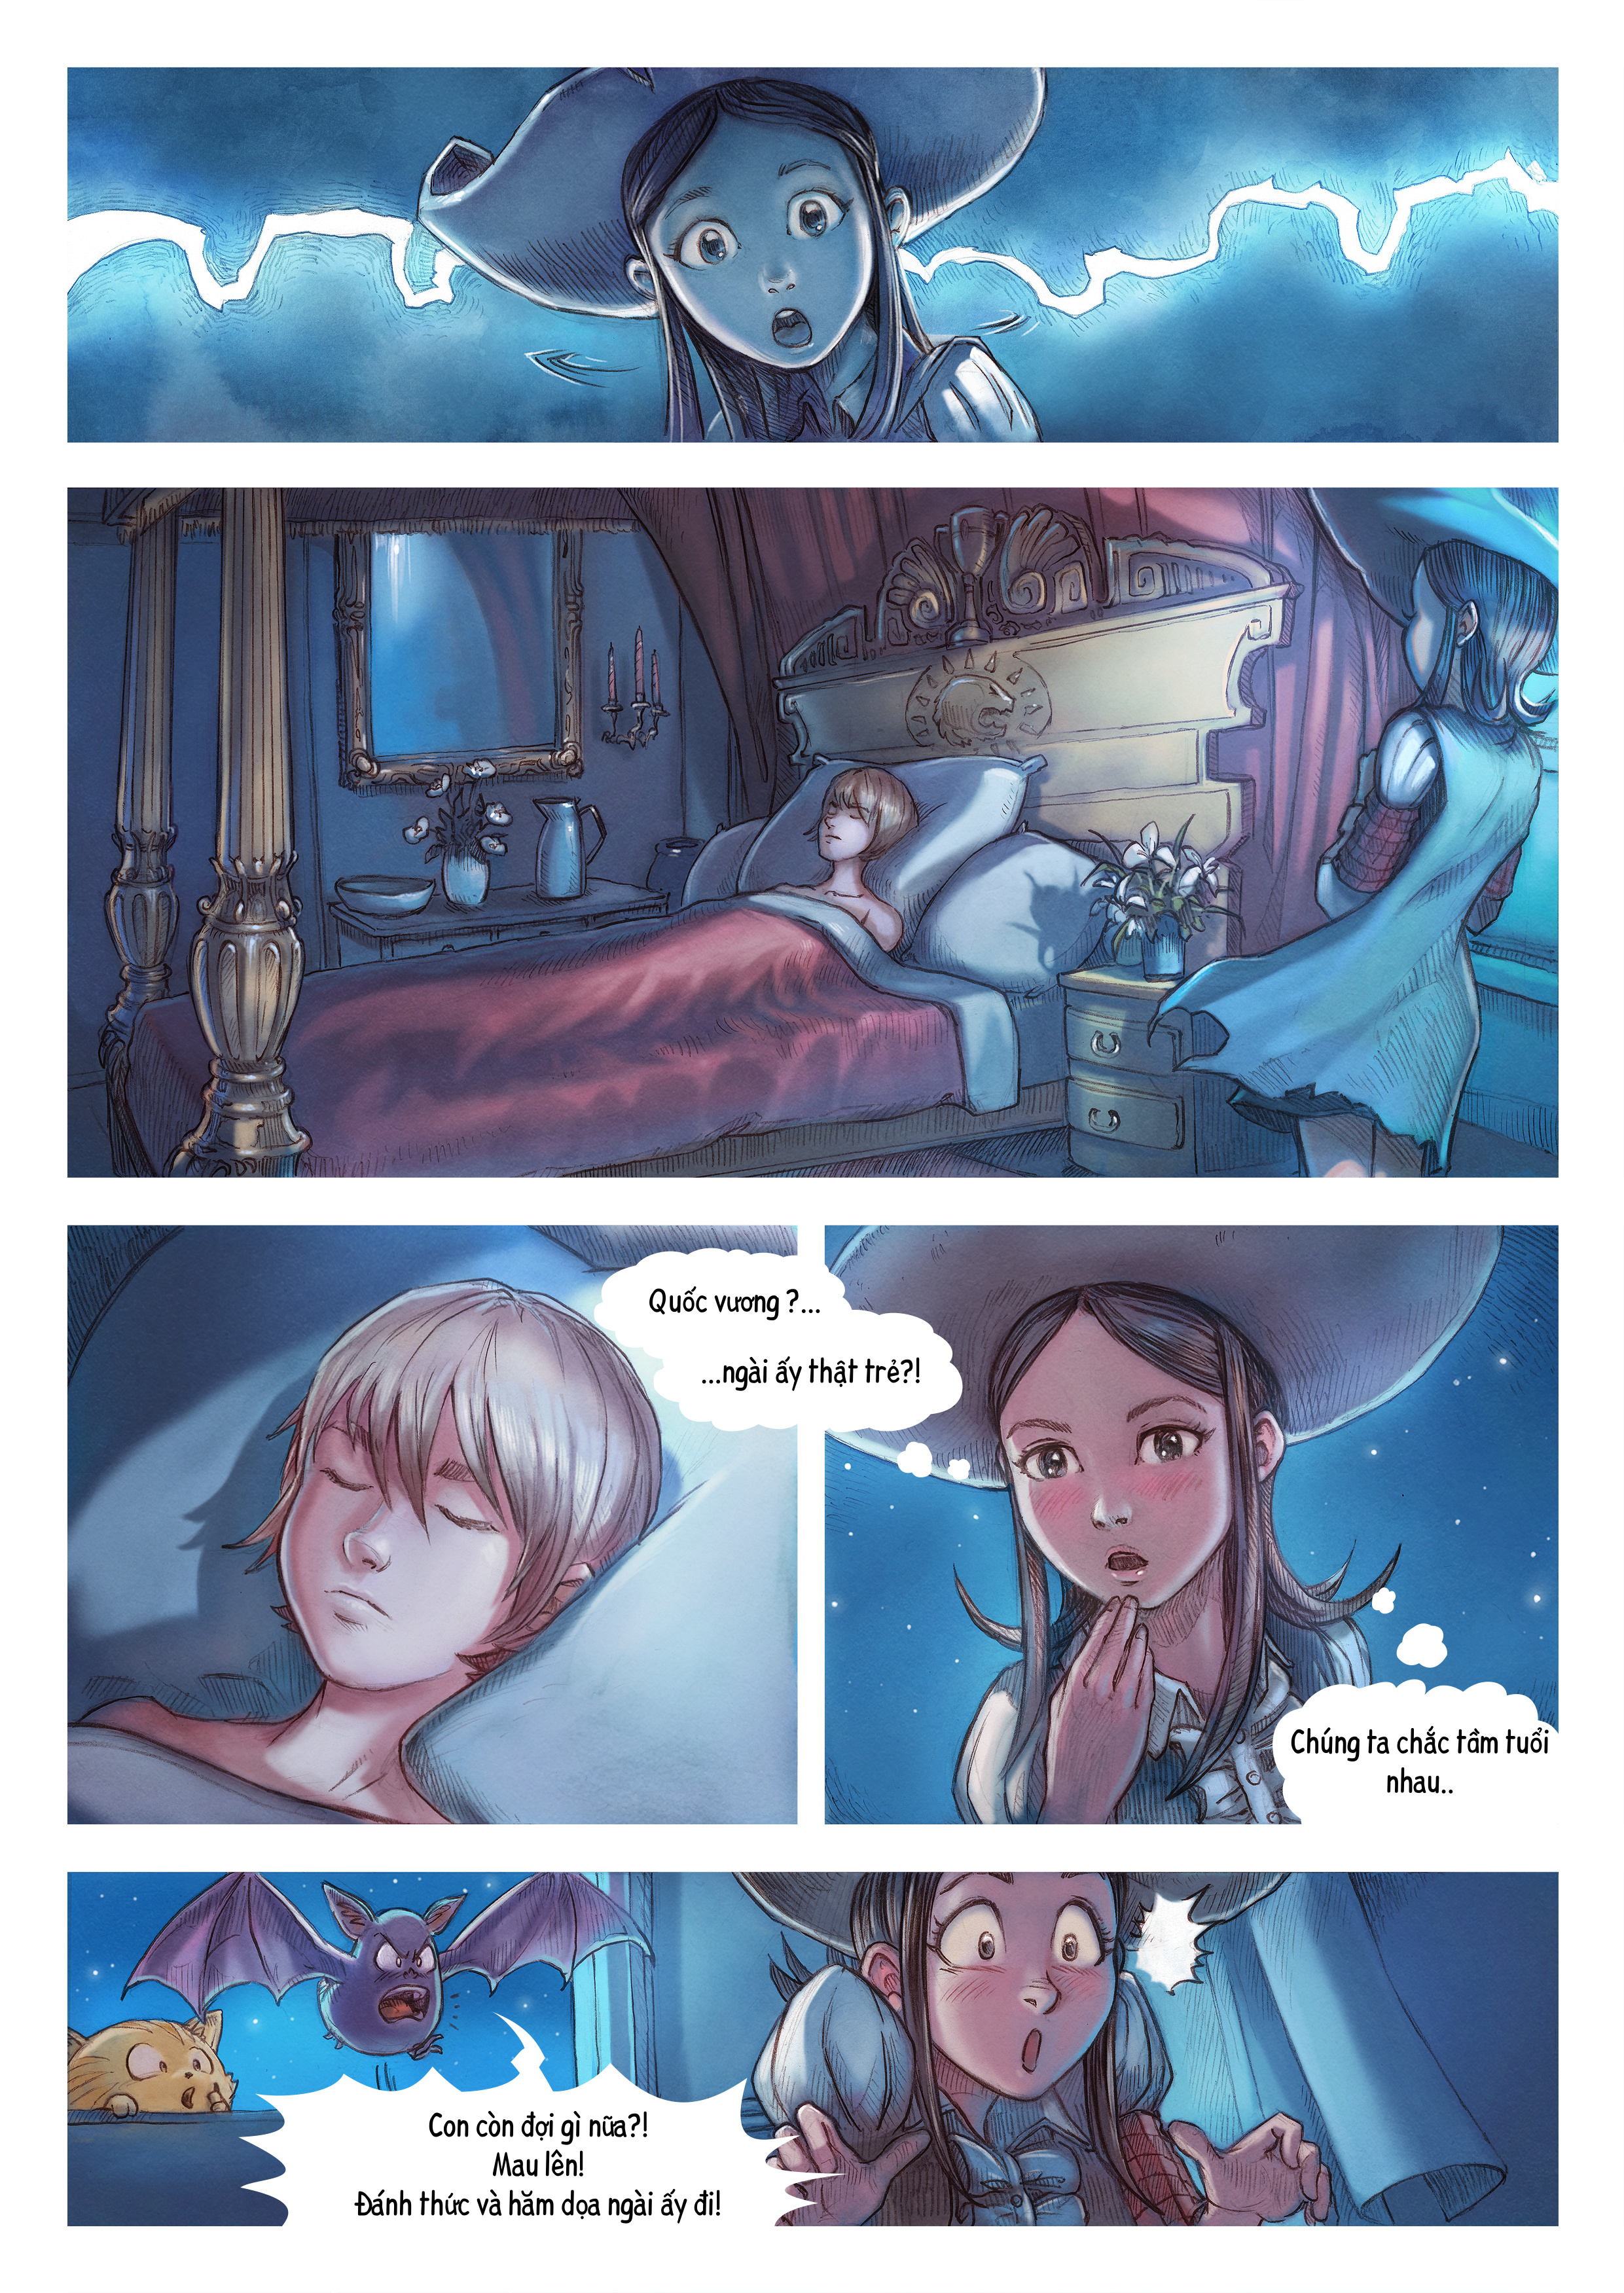 A webcomic page of Pepper&Carrot, Tập 11 [vi], trang 4